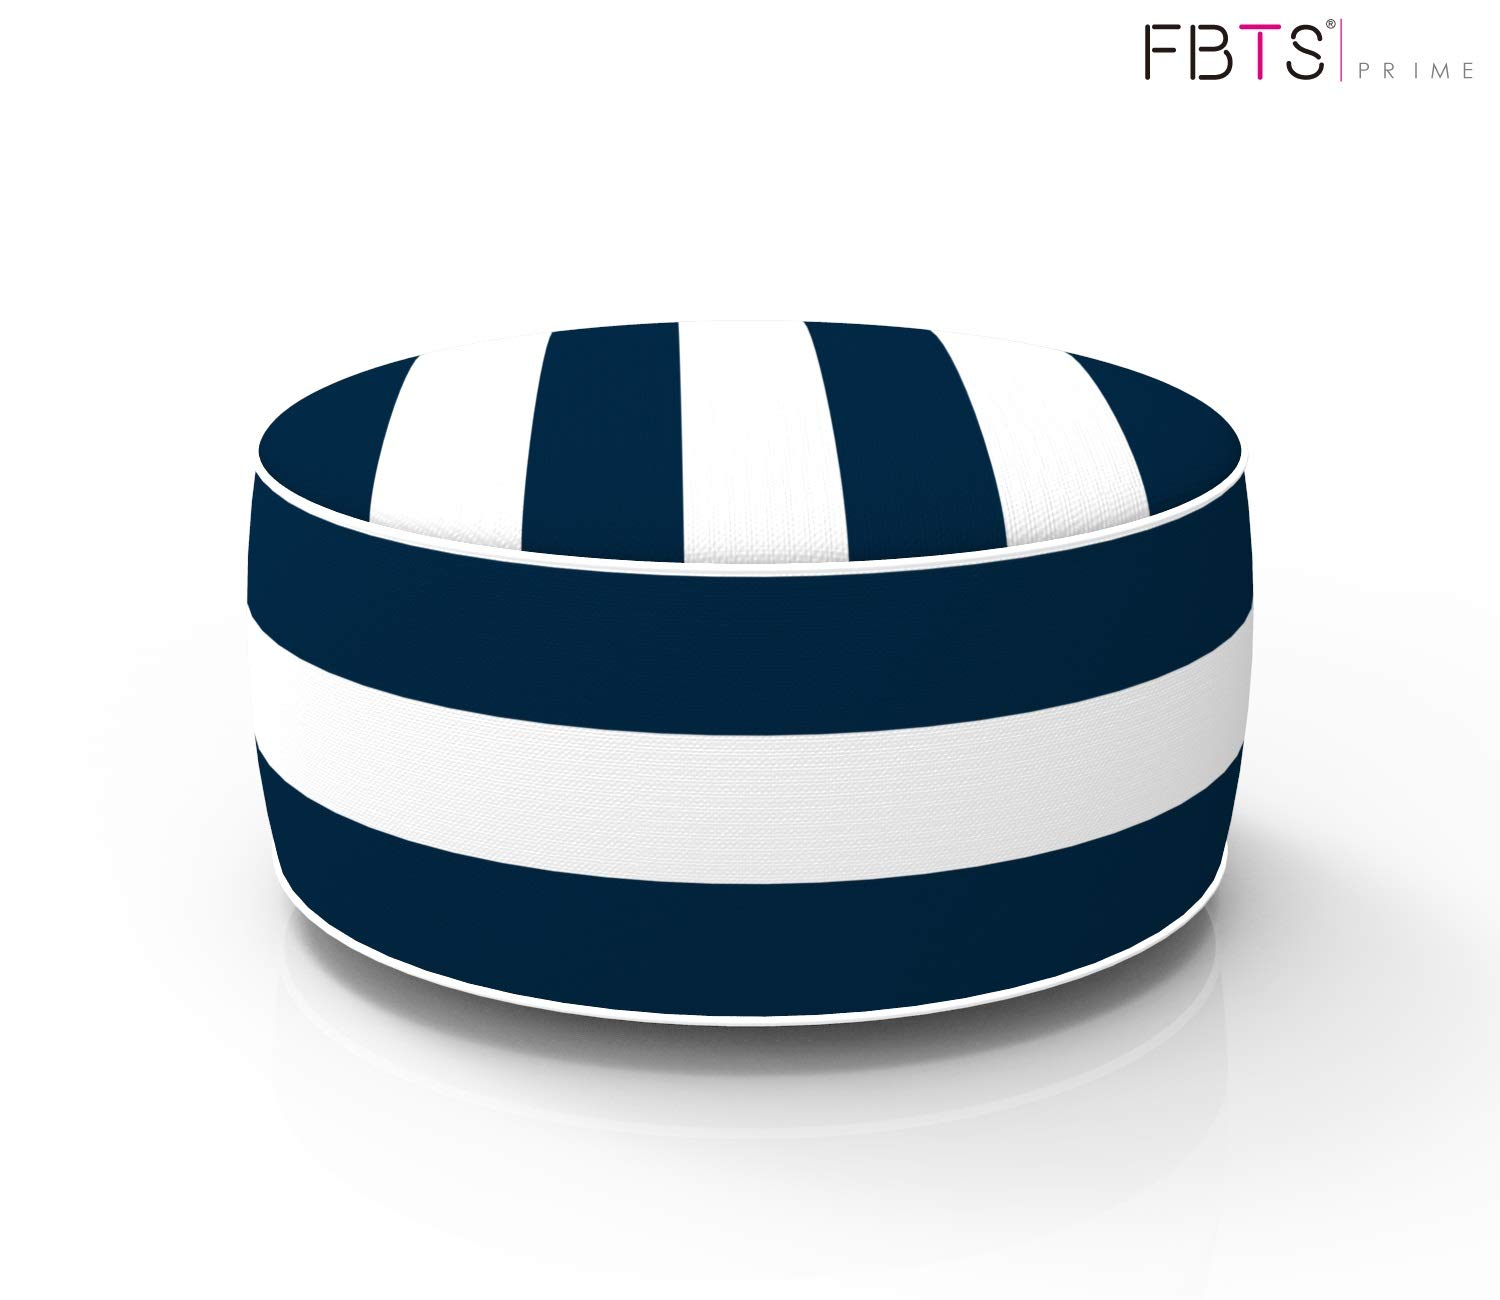 FBTS Prime Outdoor Inflatable Ottoman Navy and White Stripe Round 21x9 Inch Patio Foot Stools and Ottomans Portable Travel Footstool Used for Outdoor Camping Home Yoga Foot Rest